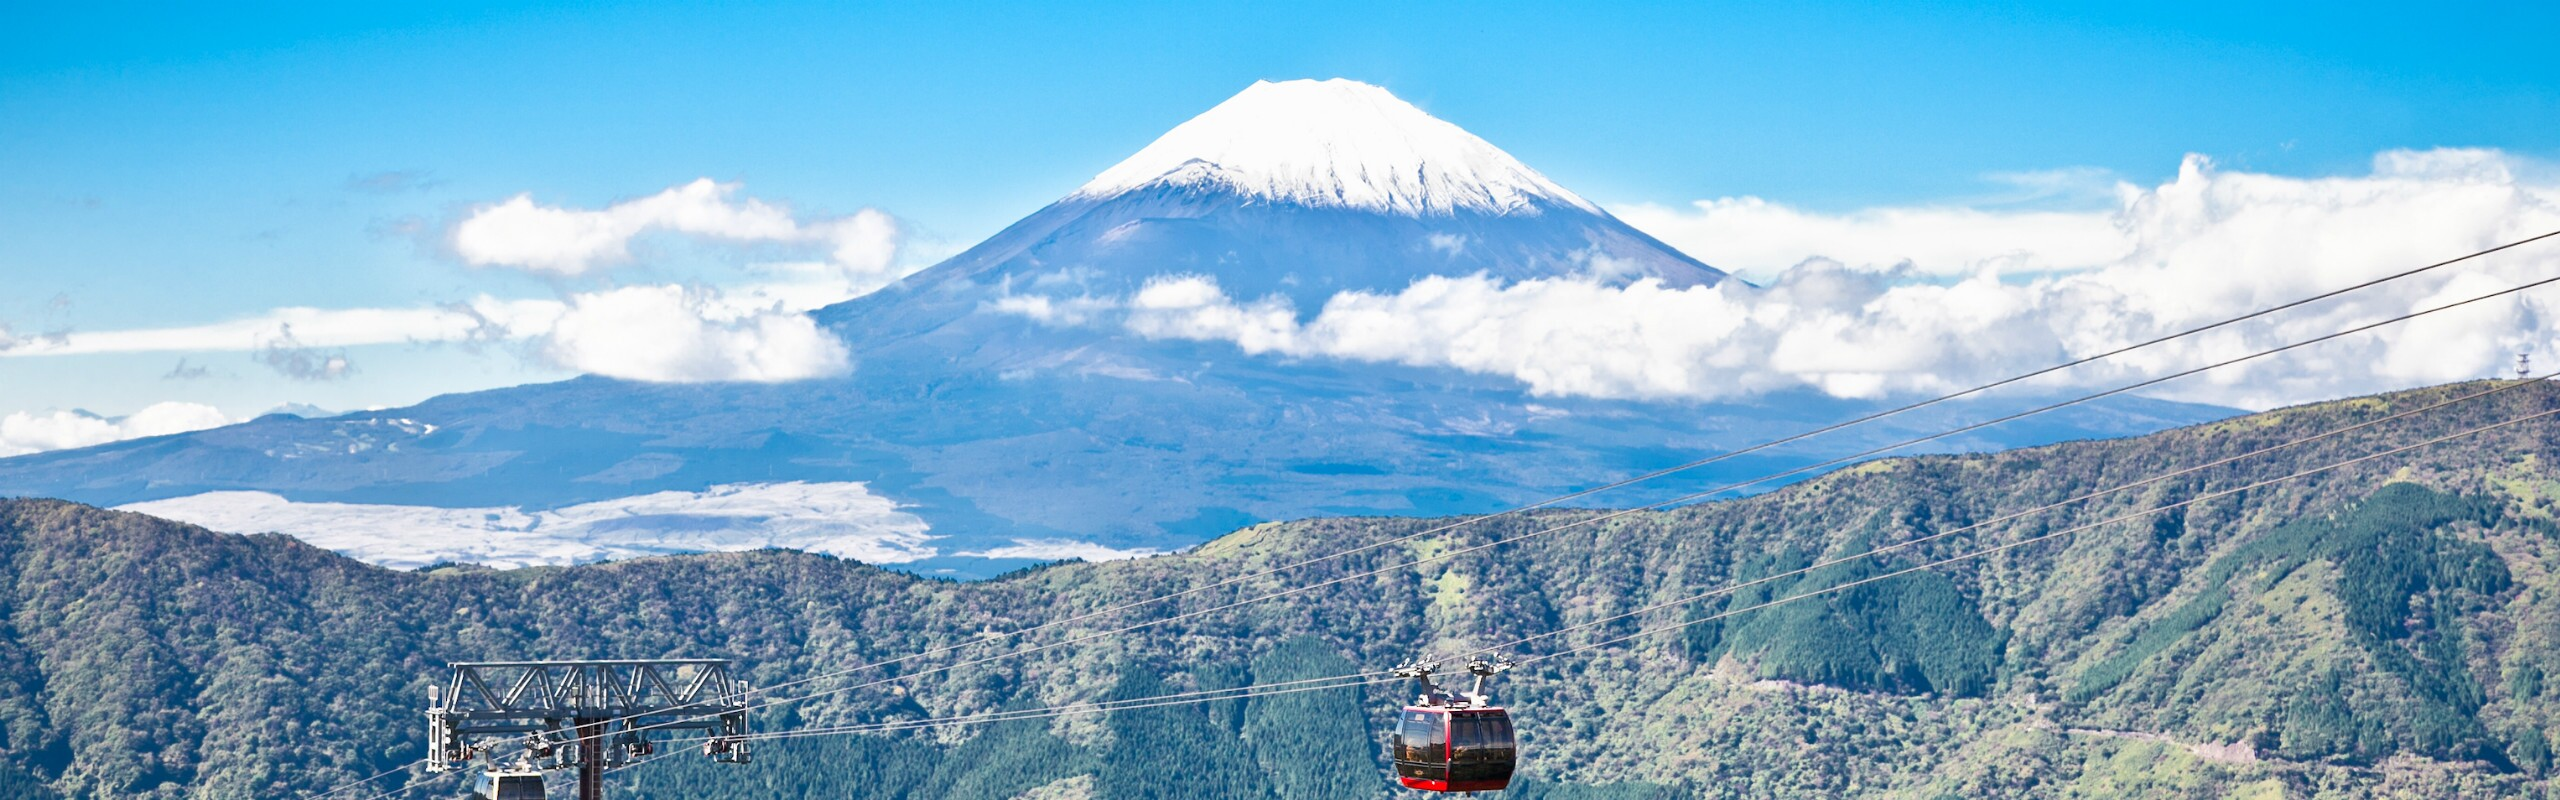 Fuji Five Lakes Guide - Where Is Mt Fuji Located?